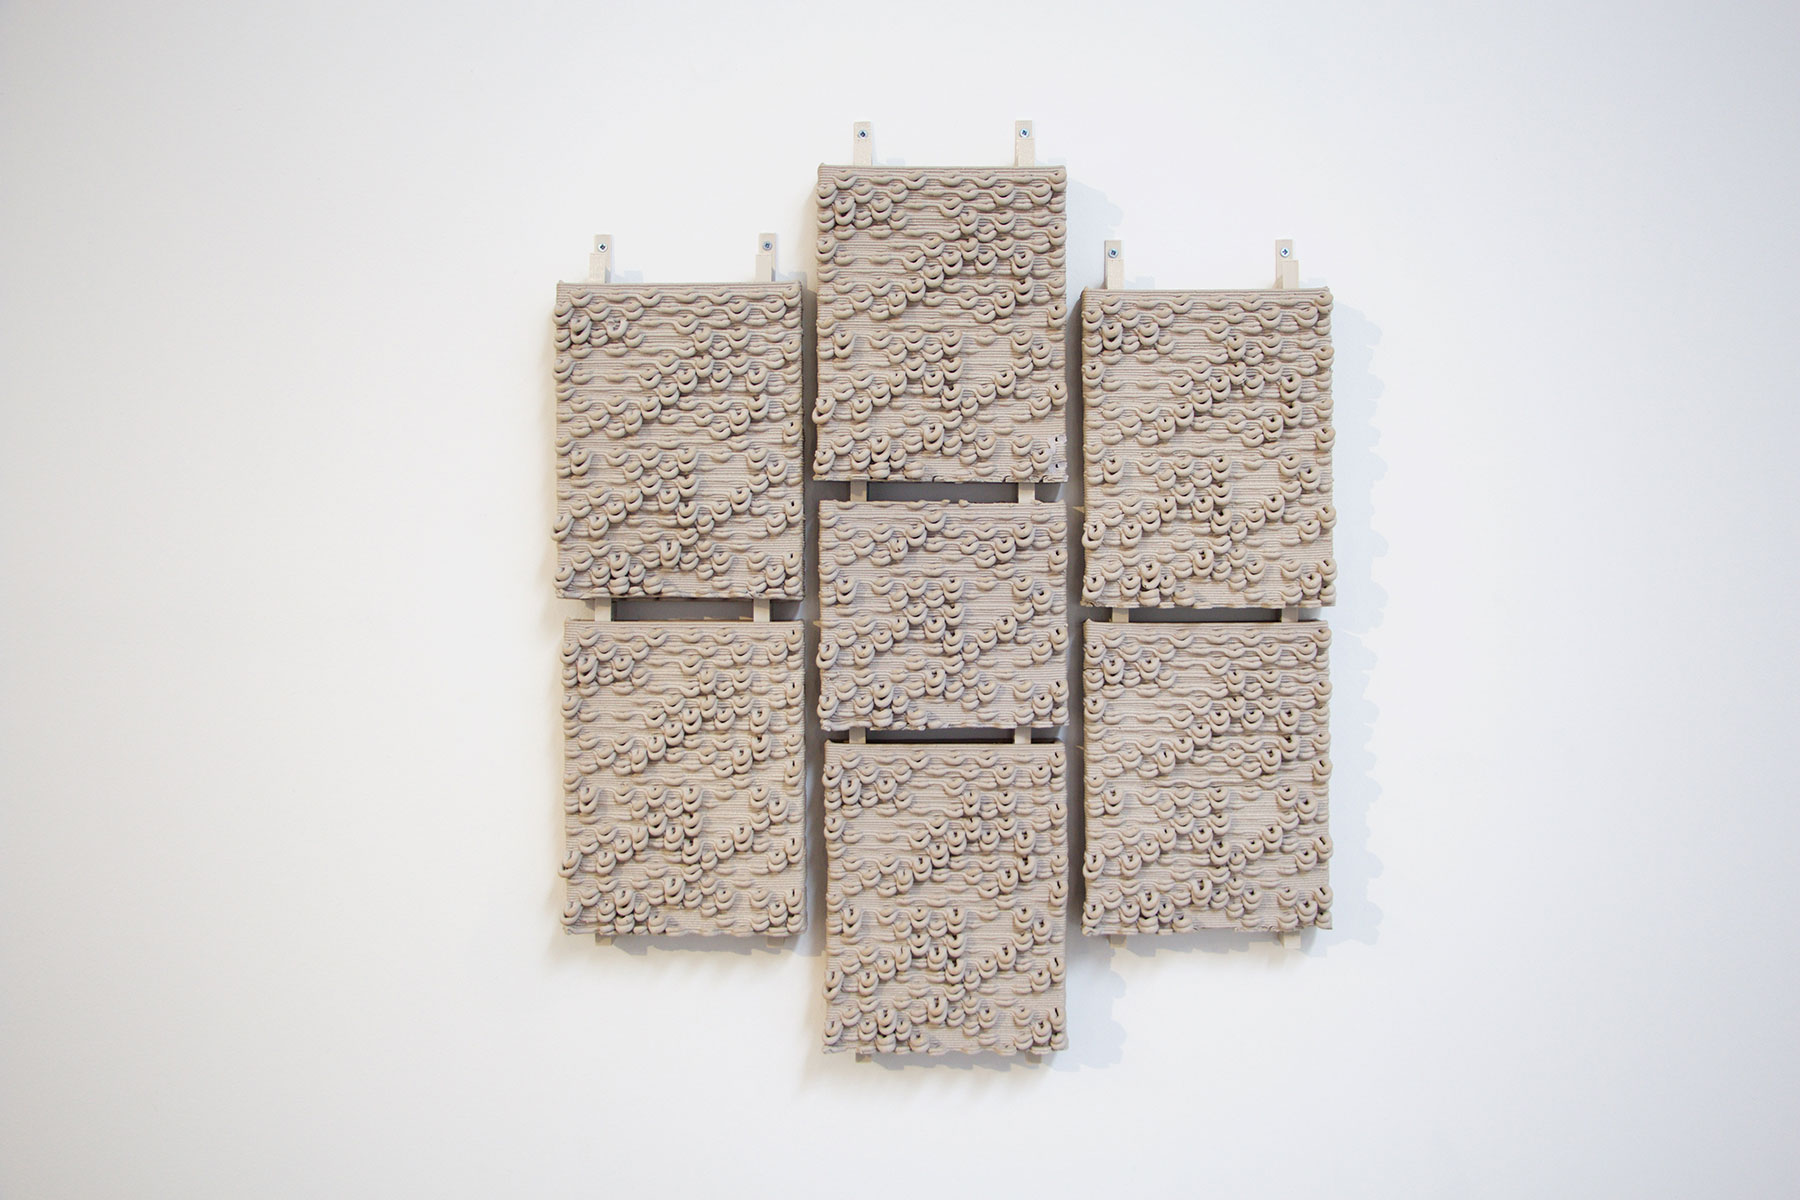 Ronald Rael, Virginia San Fratello, Kent Wilson, Alex Schofield. GCODE.Clay, 2016. Prototypes for ceramic cladding systems for building; each assembly is hung using custom, 3-D printed hardware.